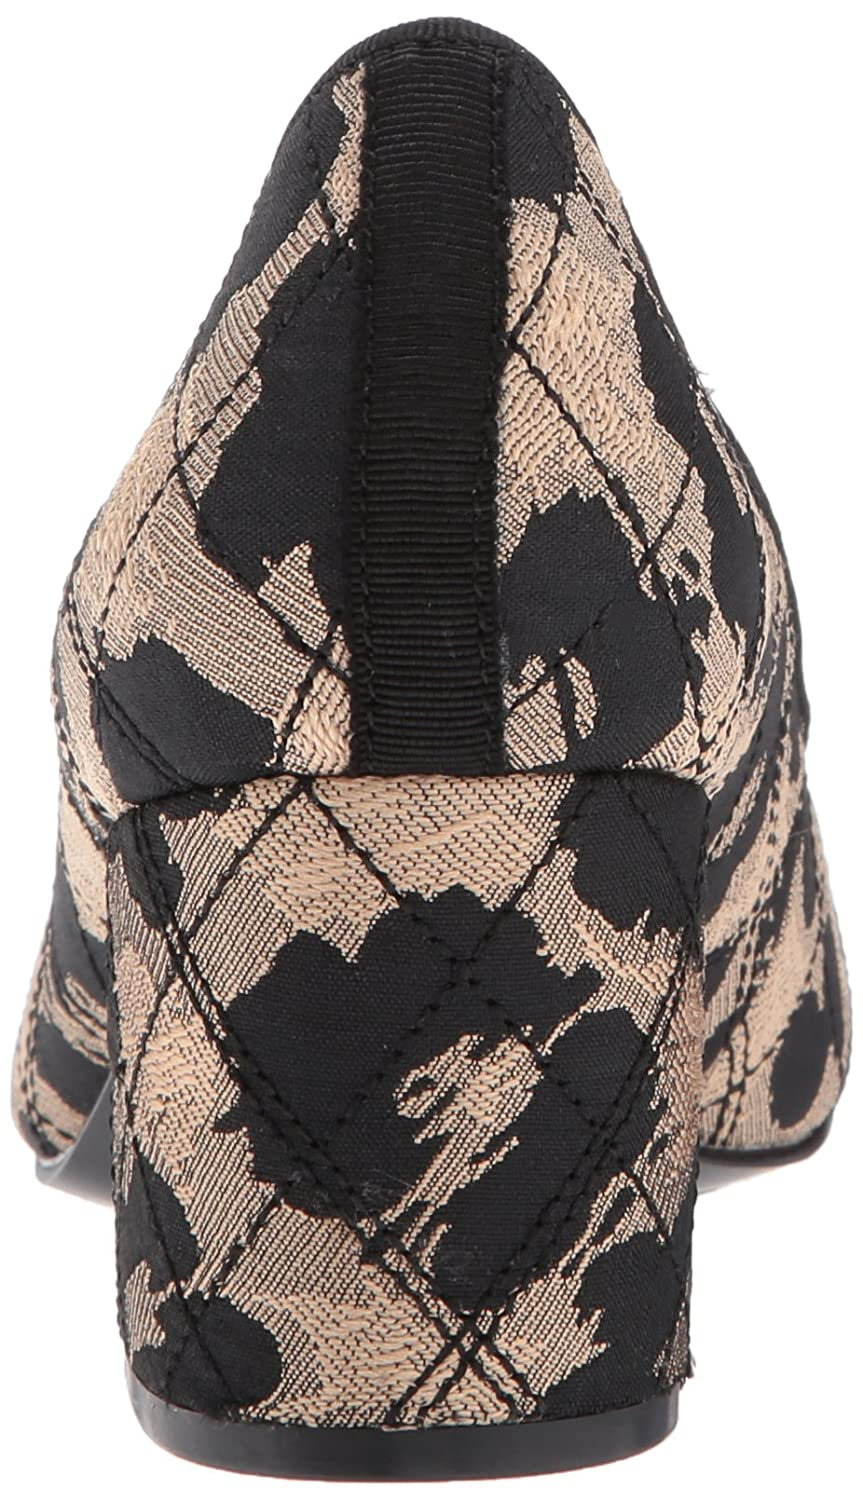 Nine West B(M) Women's Ceciley Pump B06X6GG5FD 9 B(M) West US|Natural Multi/Black Fabric 1f540c